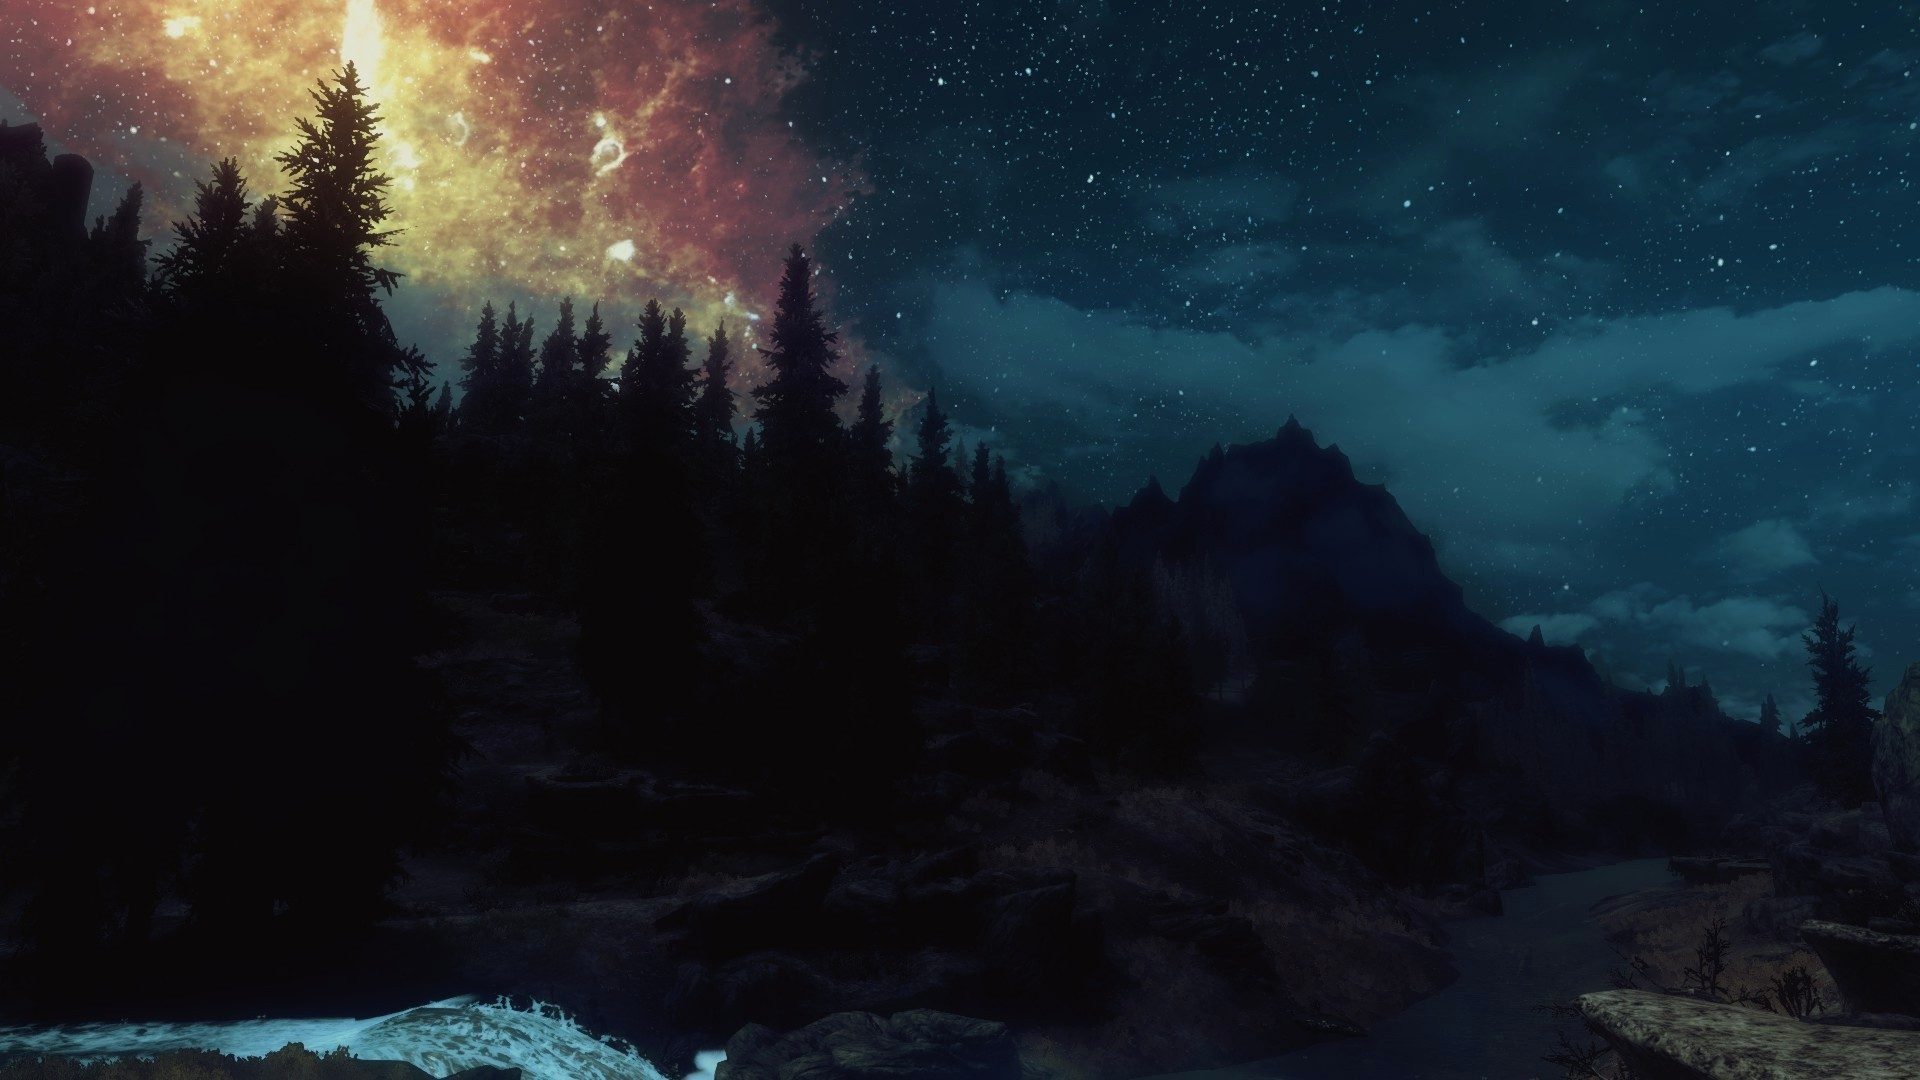 1920x1080 Skyrim 1920x1080 px - High Resolution Backgrounds for desktop and mobile